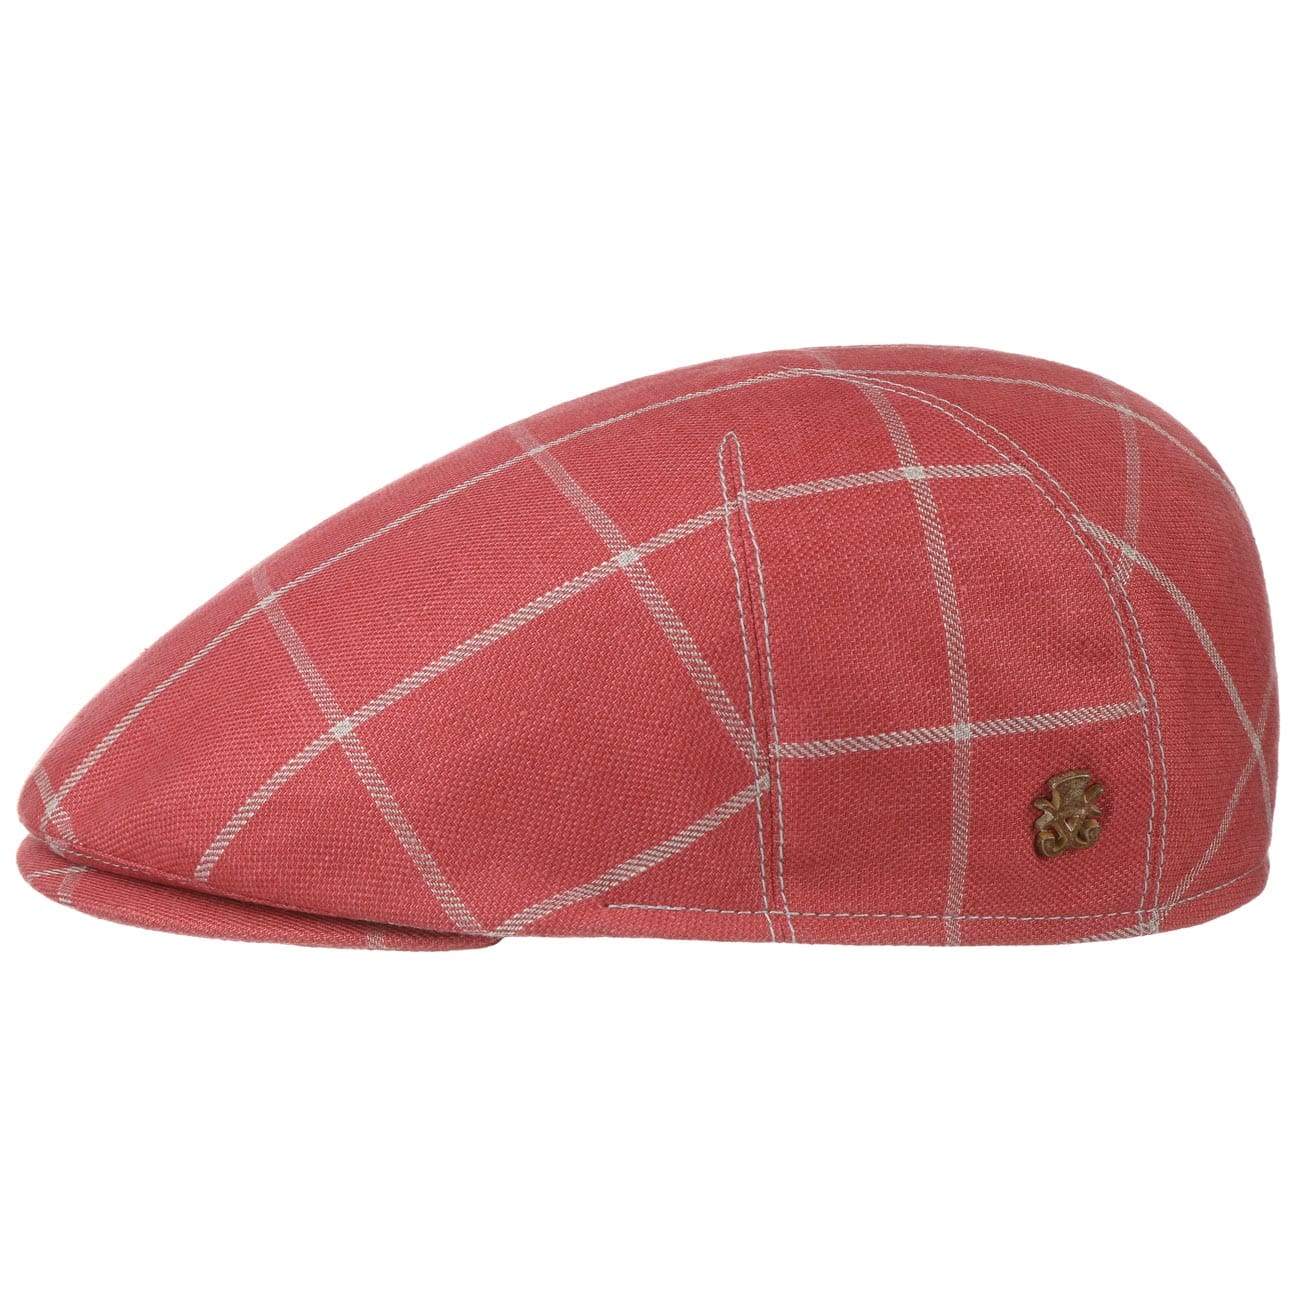 Gorra Pierce Plaid Zechbauer by Mayser